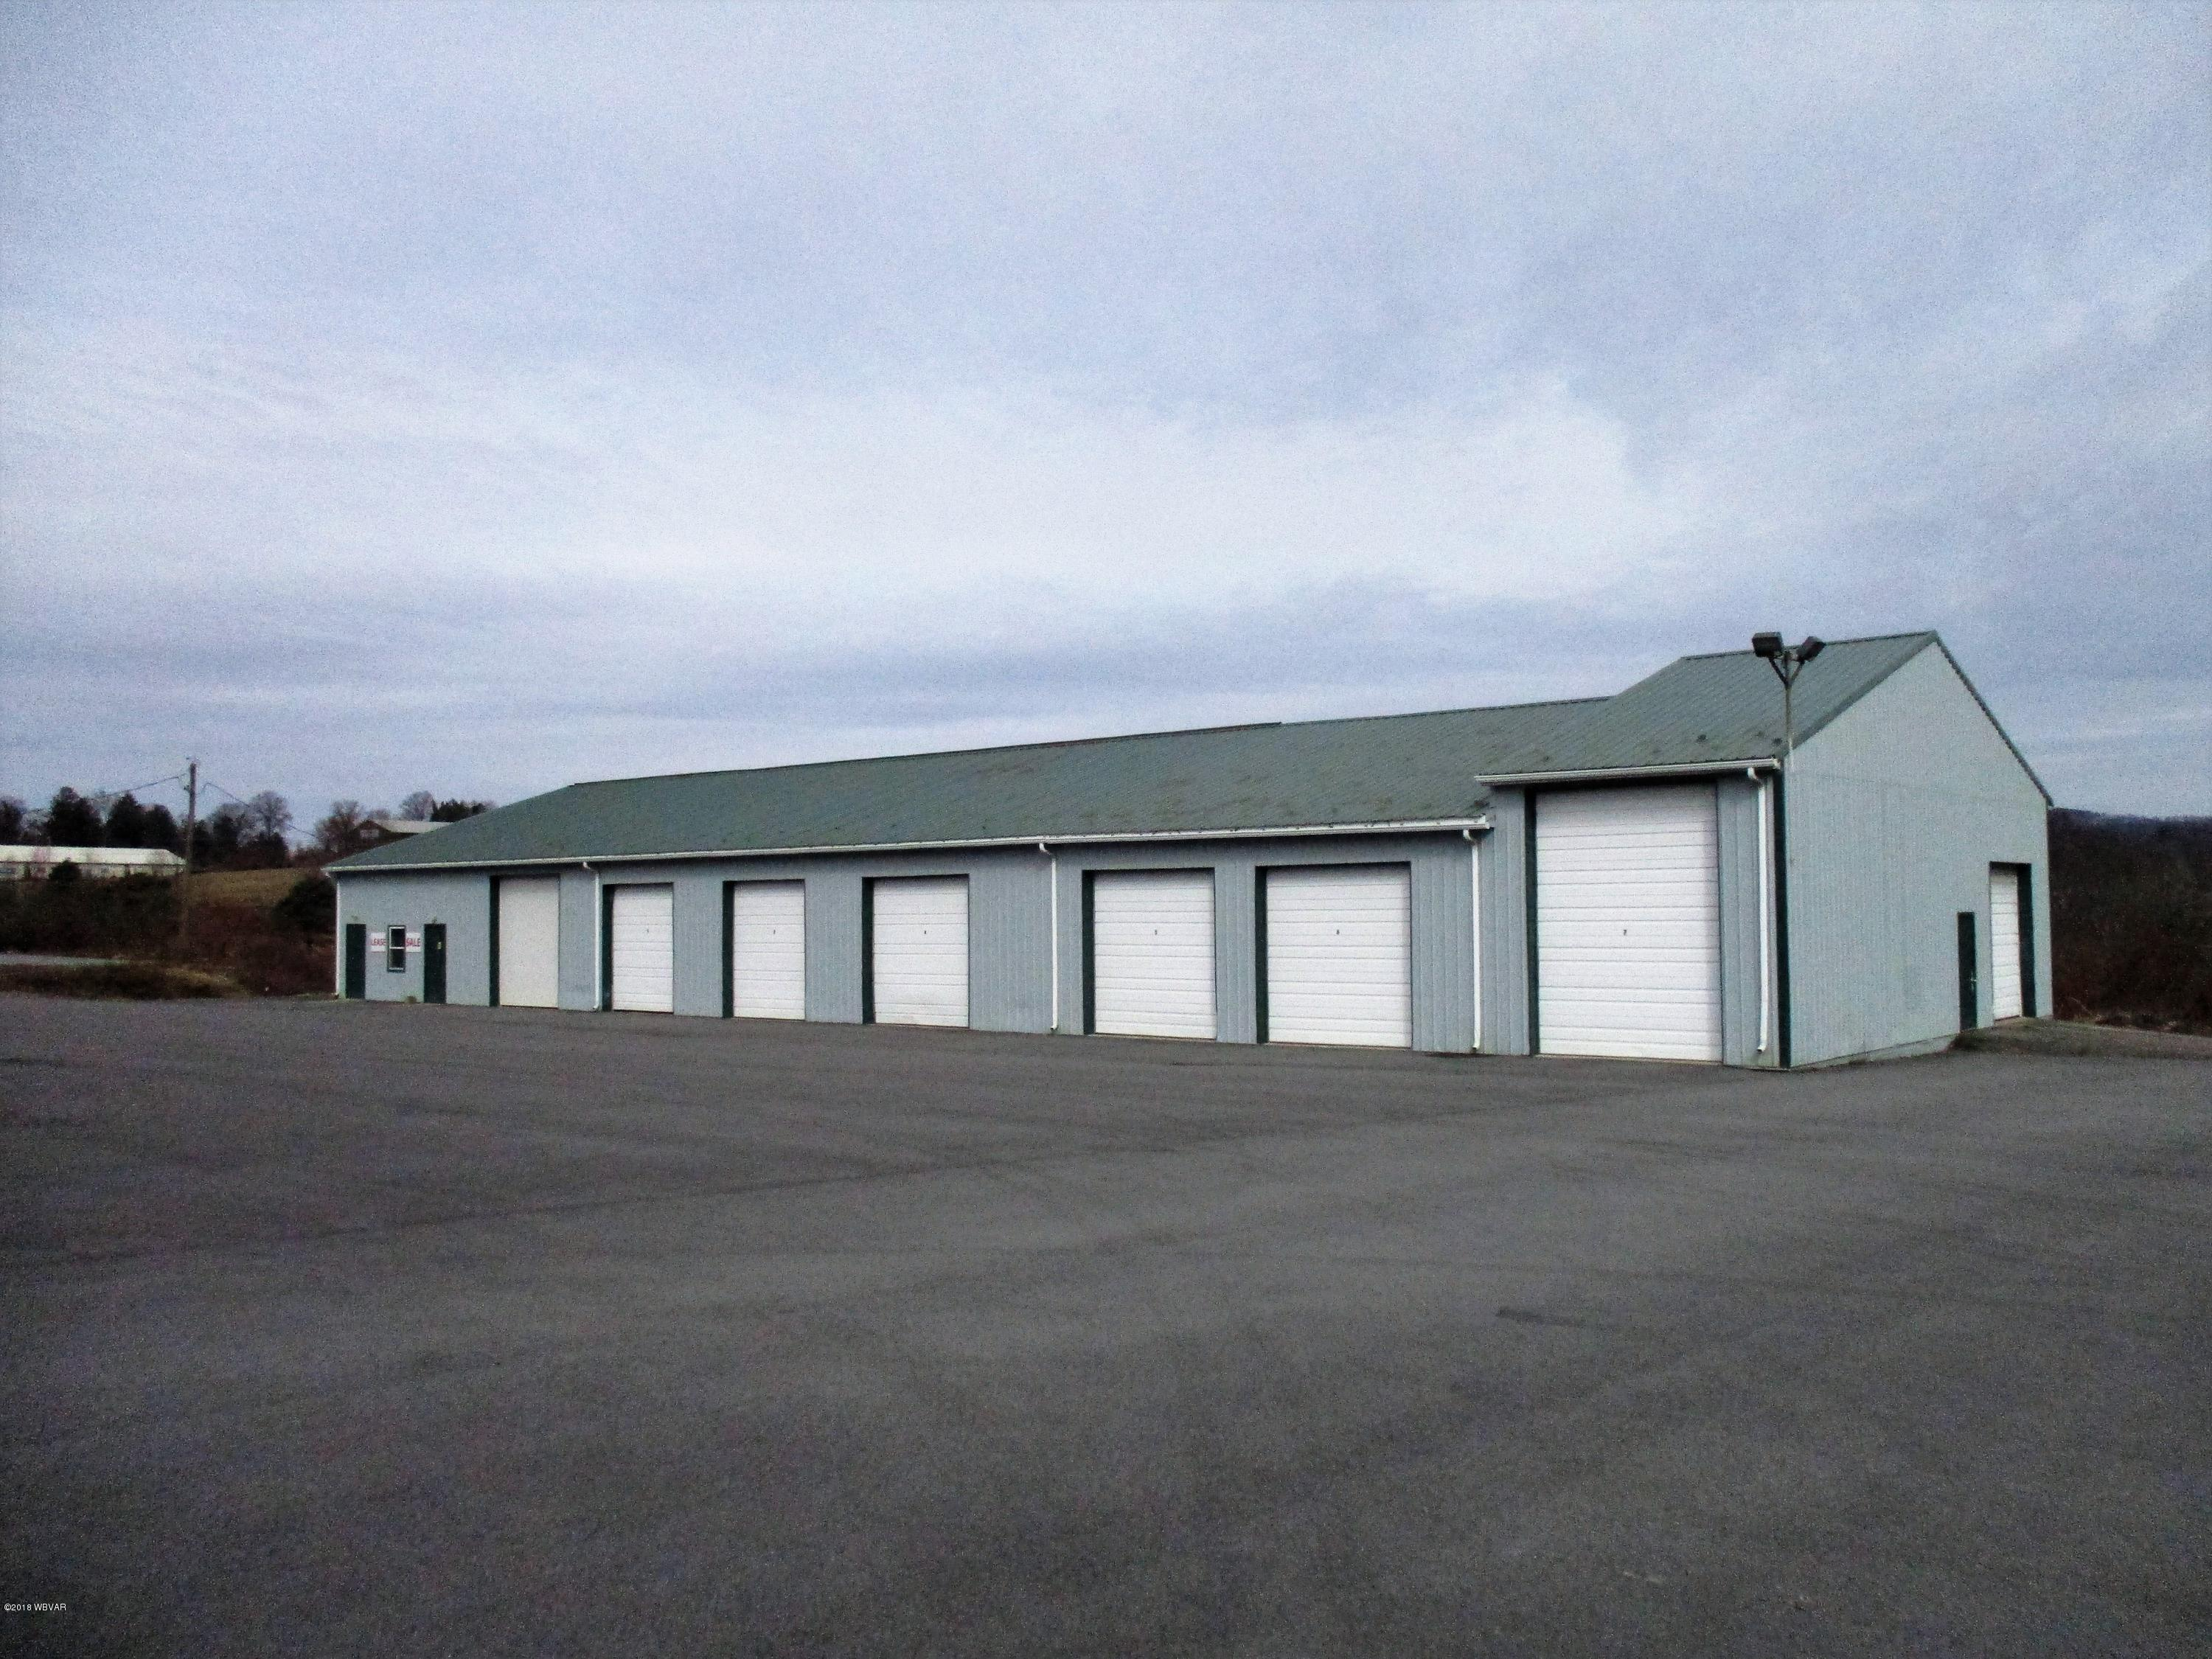 2910-2946 LYCOMING MALL DRIVE, Muncy, PA 17756, ,6 BathroomsBathrooms,Commercial sales,For sale,LYCOMING MALL,WB-84751